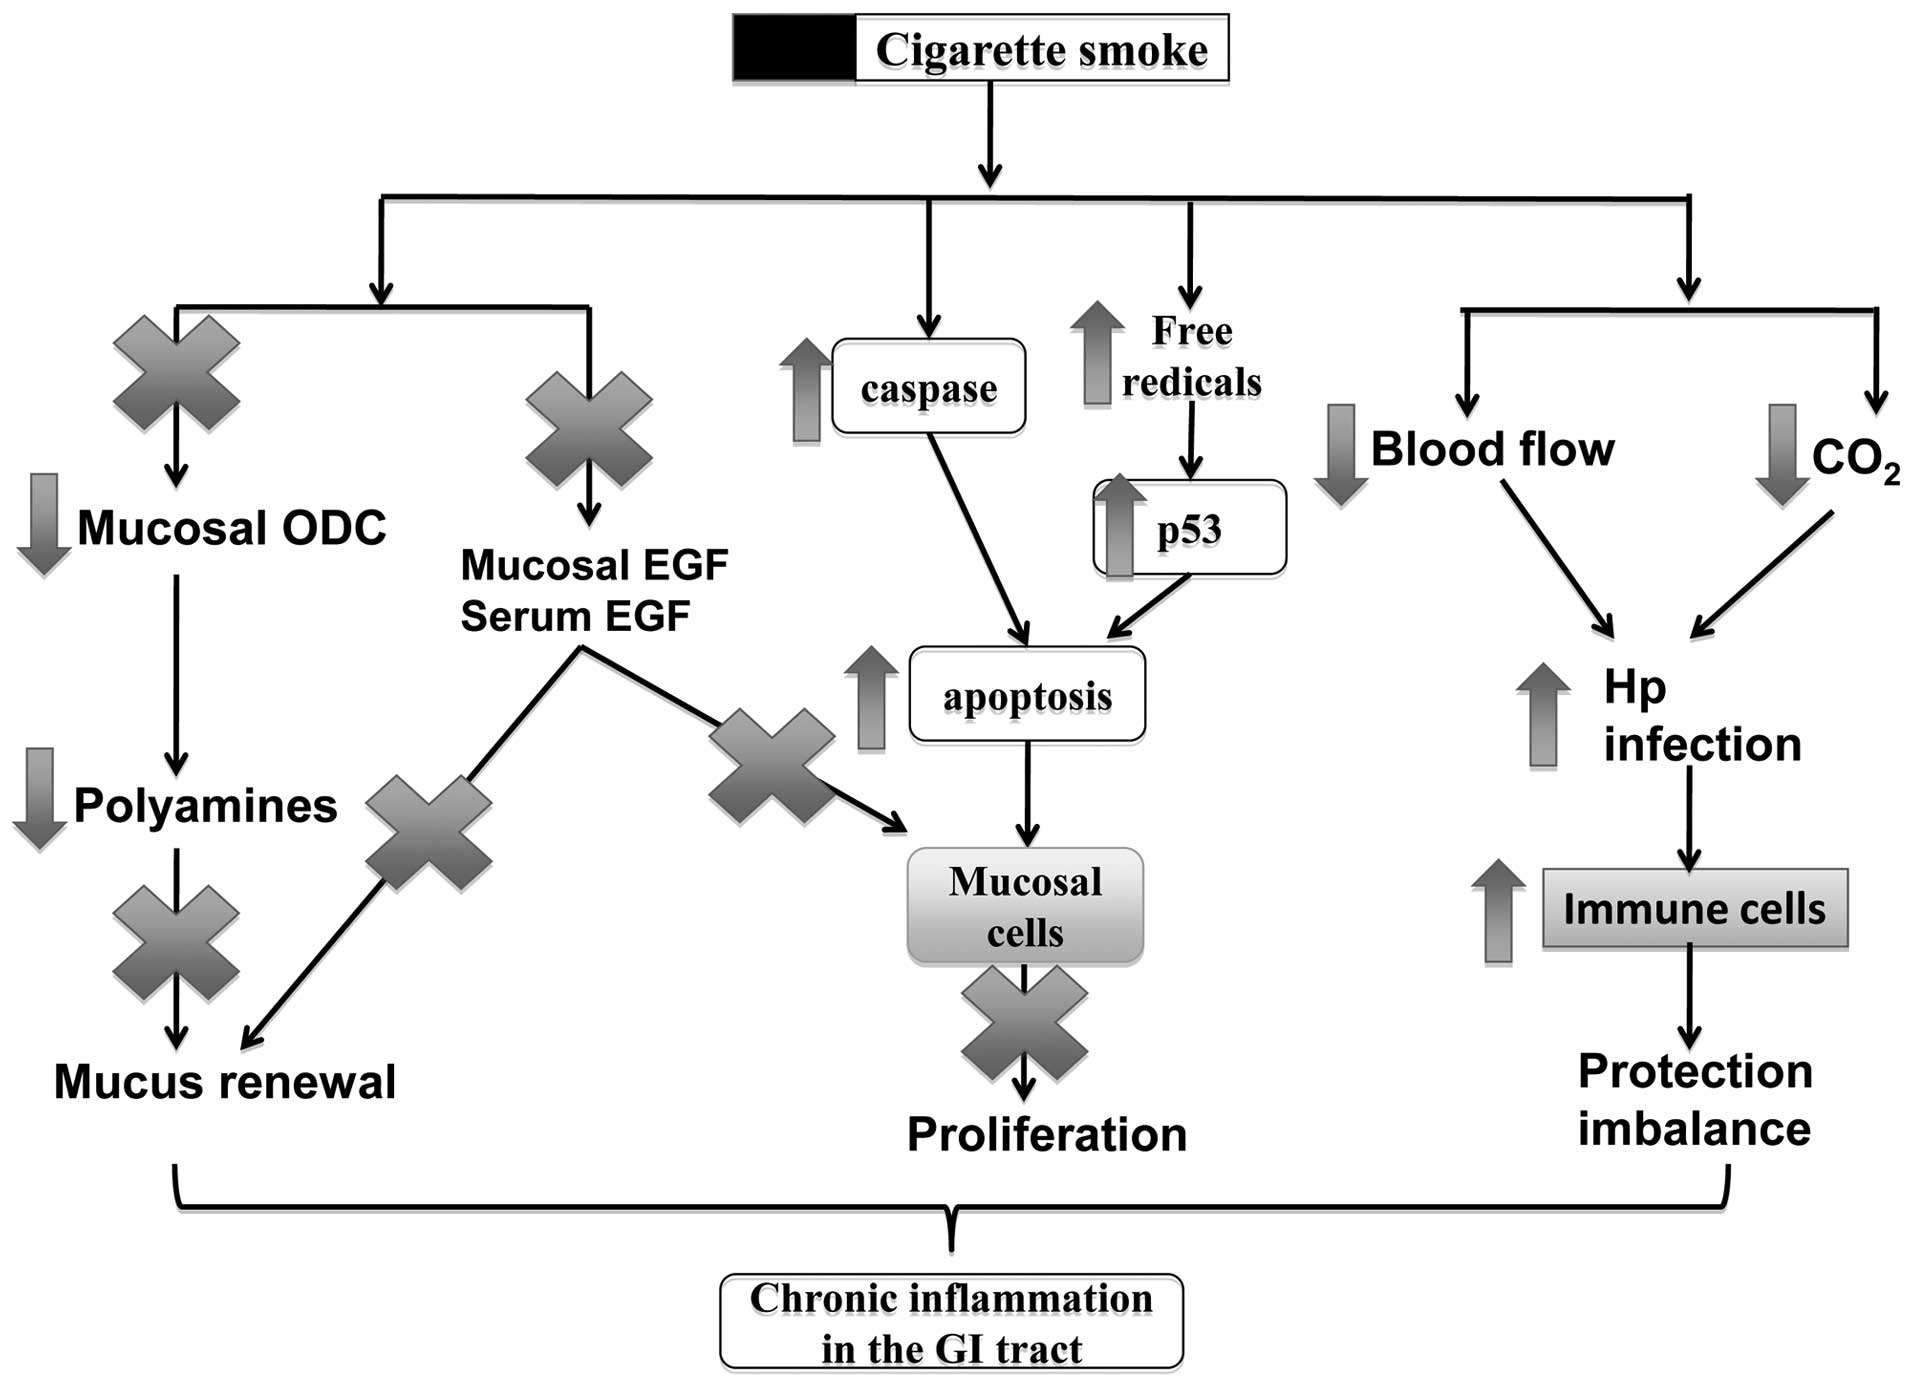 cigarette smoking and gastrointestinal diseases the causal